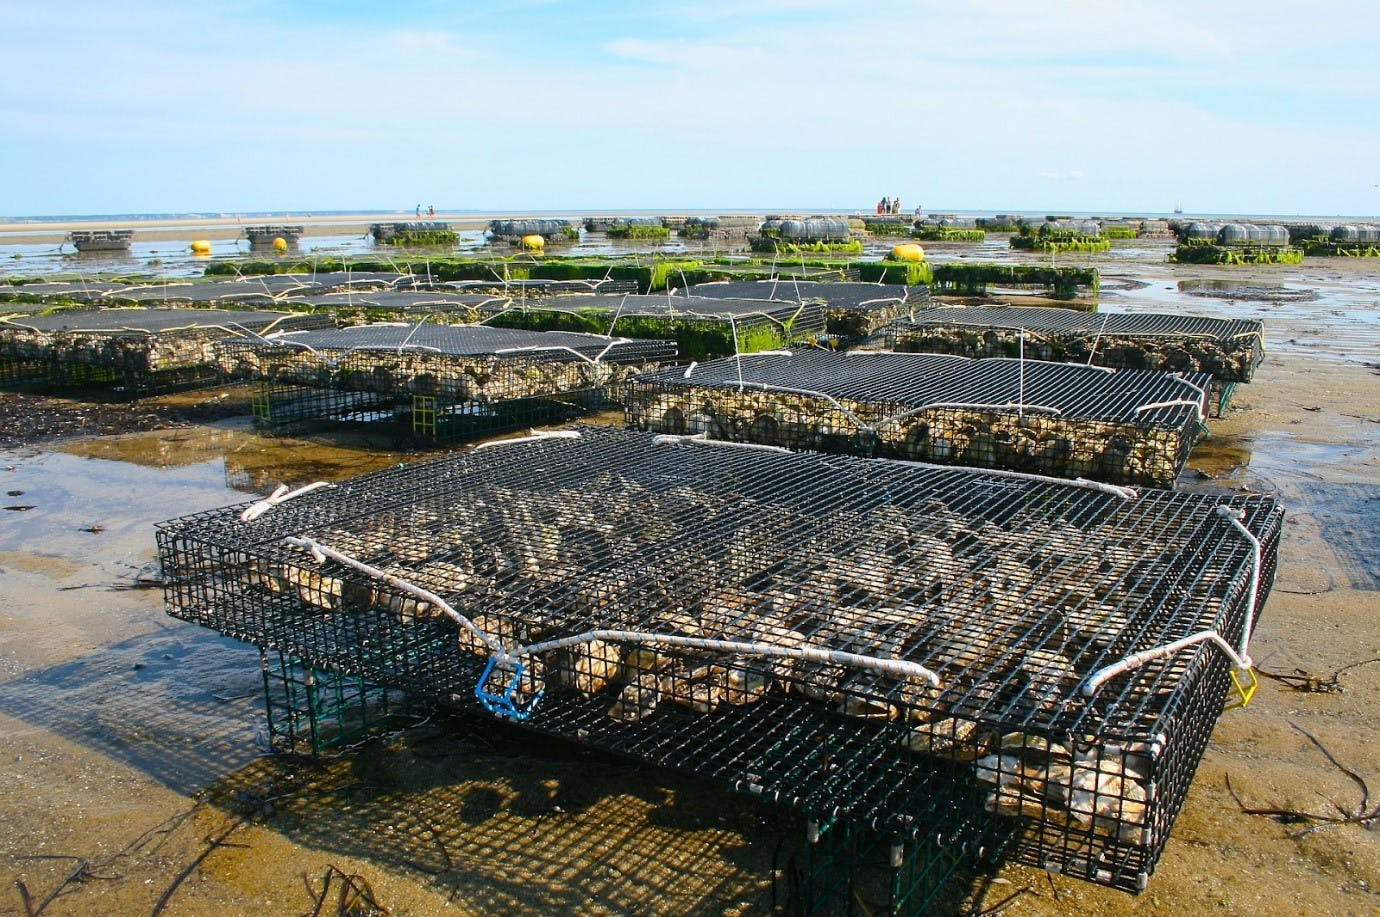 Offshore oyster beds at low tide